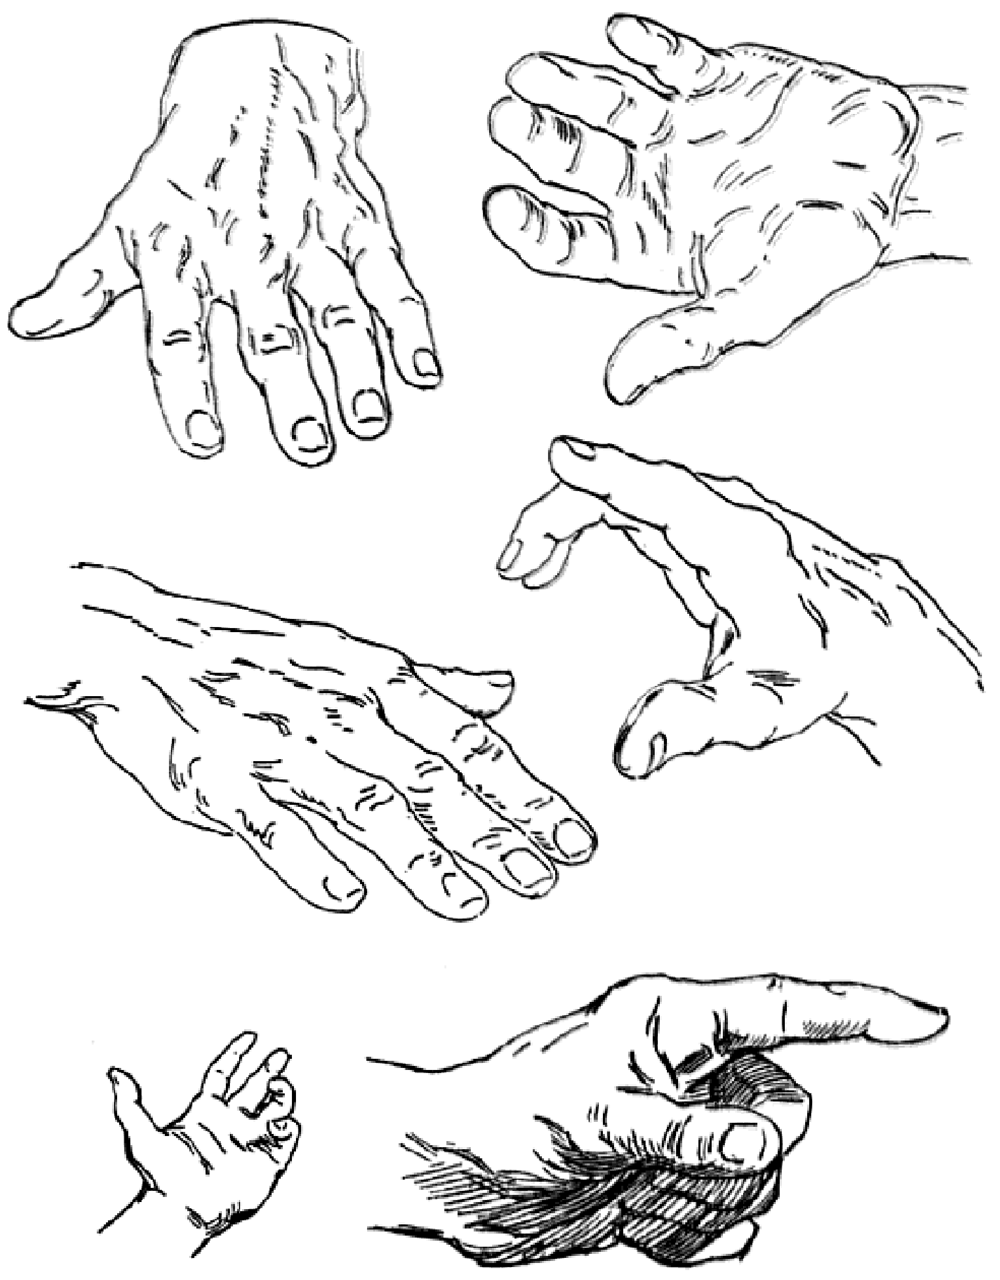 It is a photo of Stupendous Hand Drawing Poses